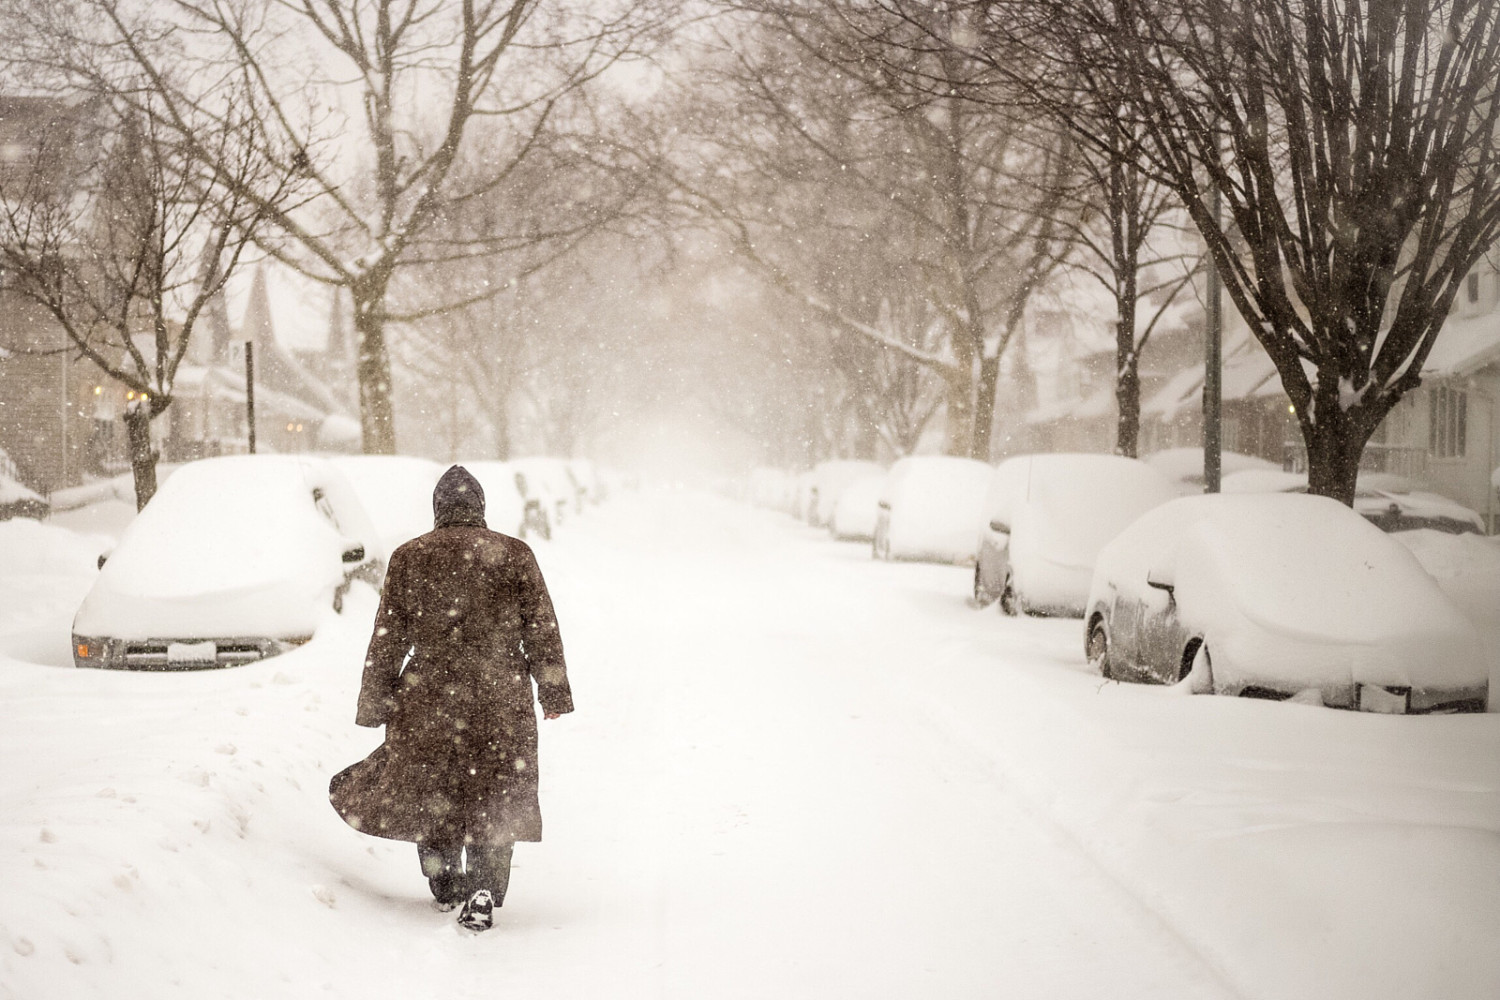 35 Photos of #Blizzard2016 Burying New York City